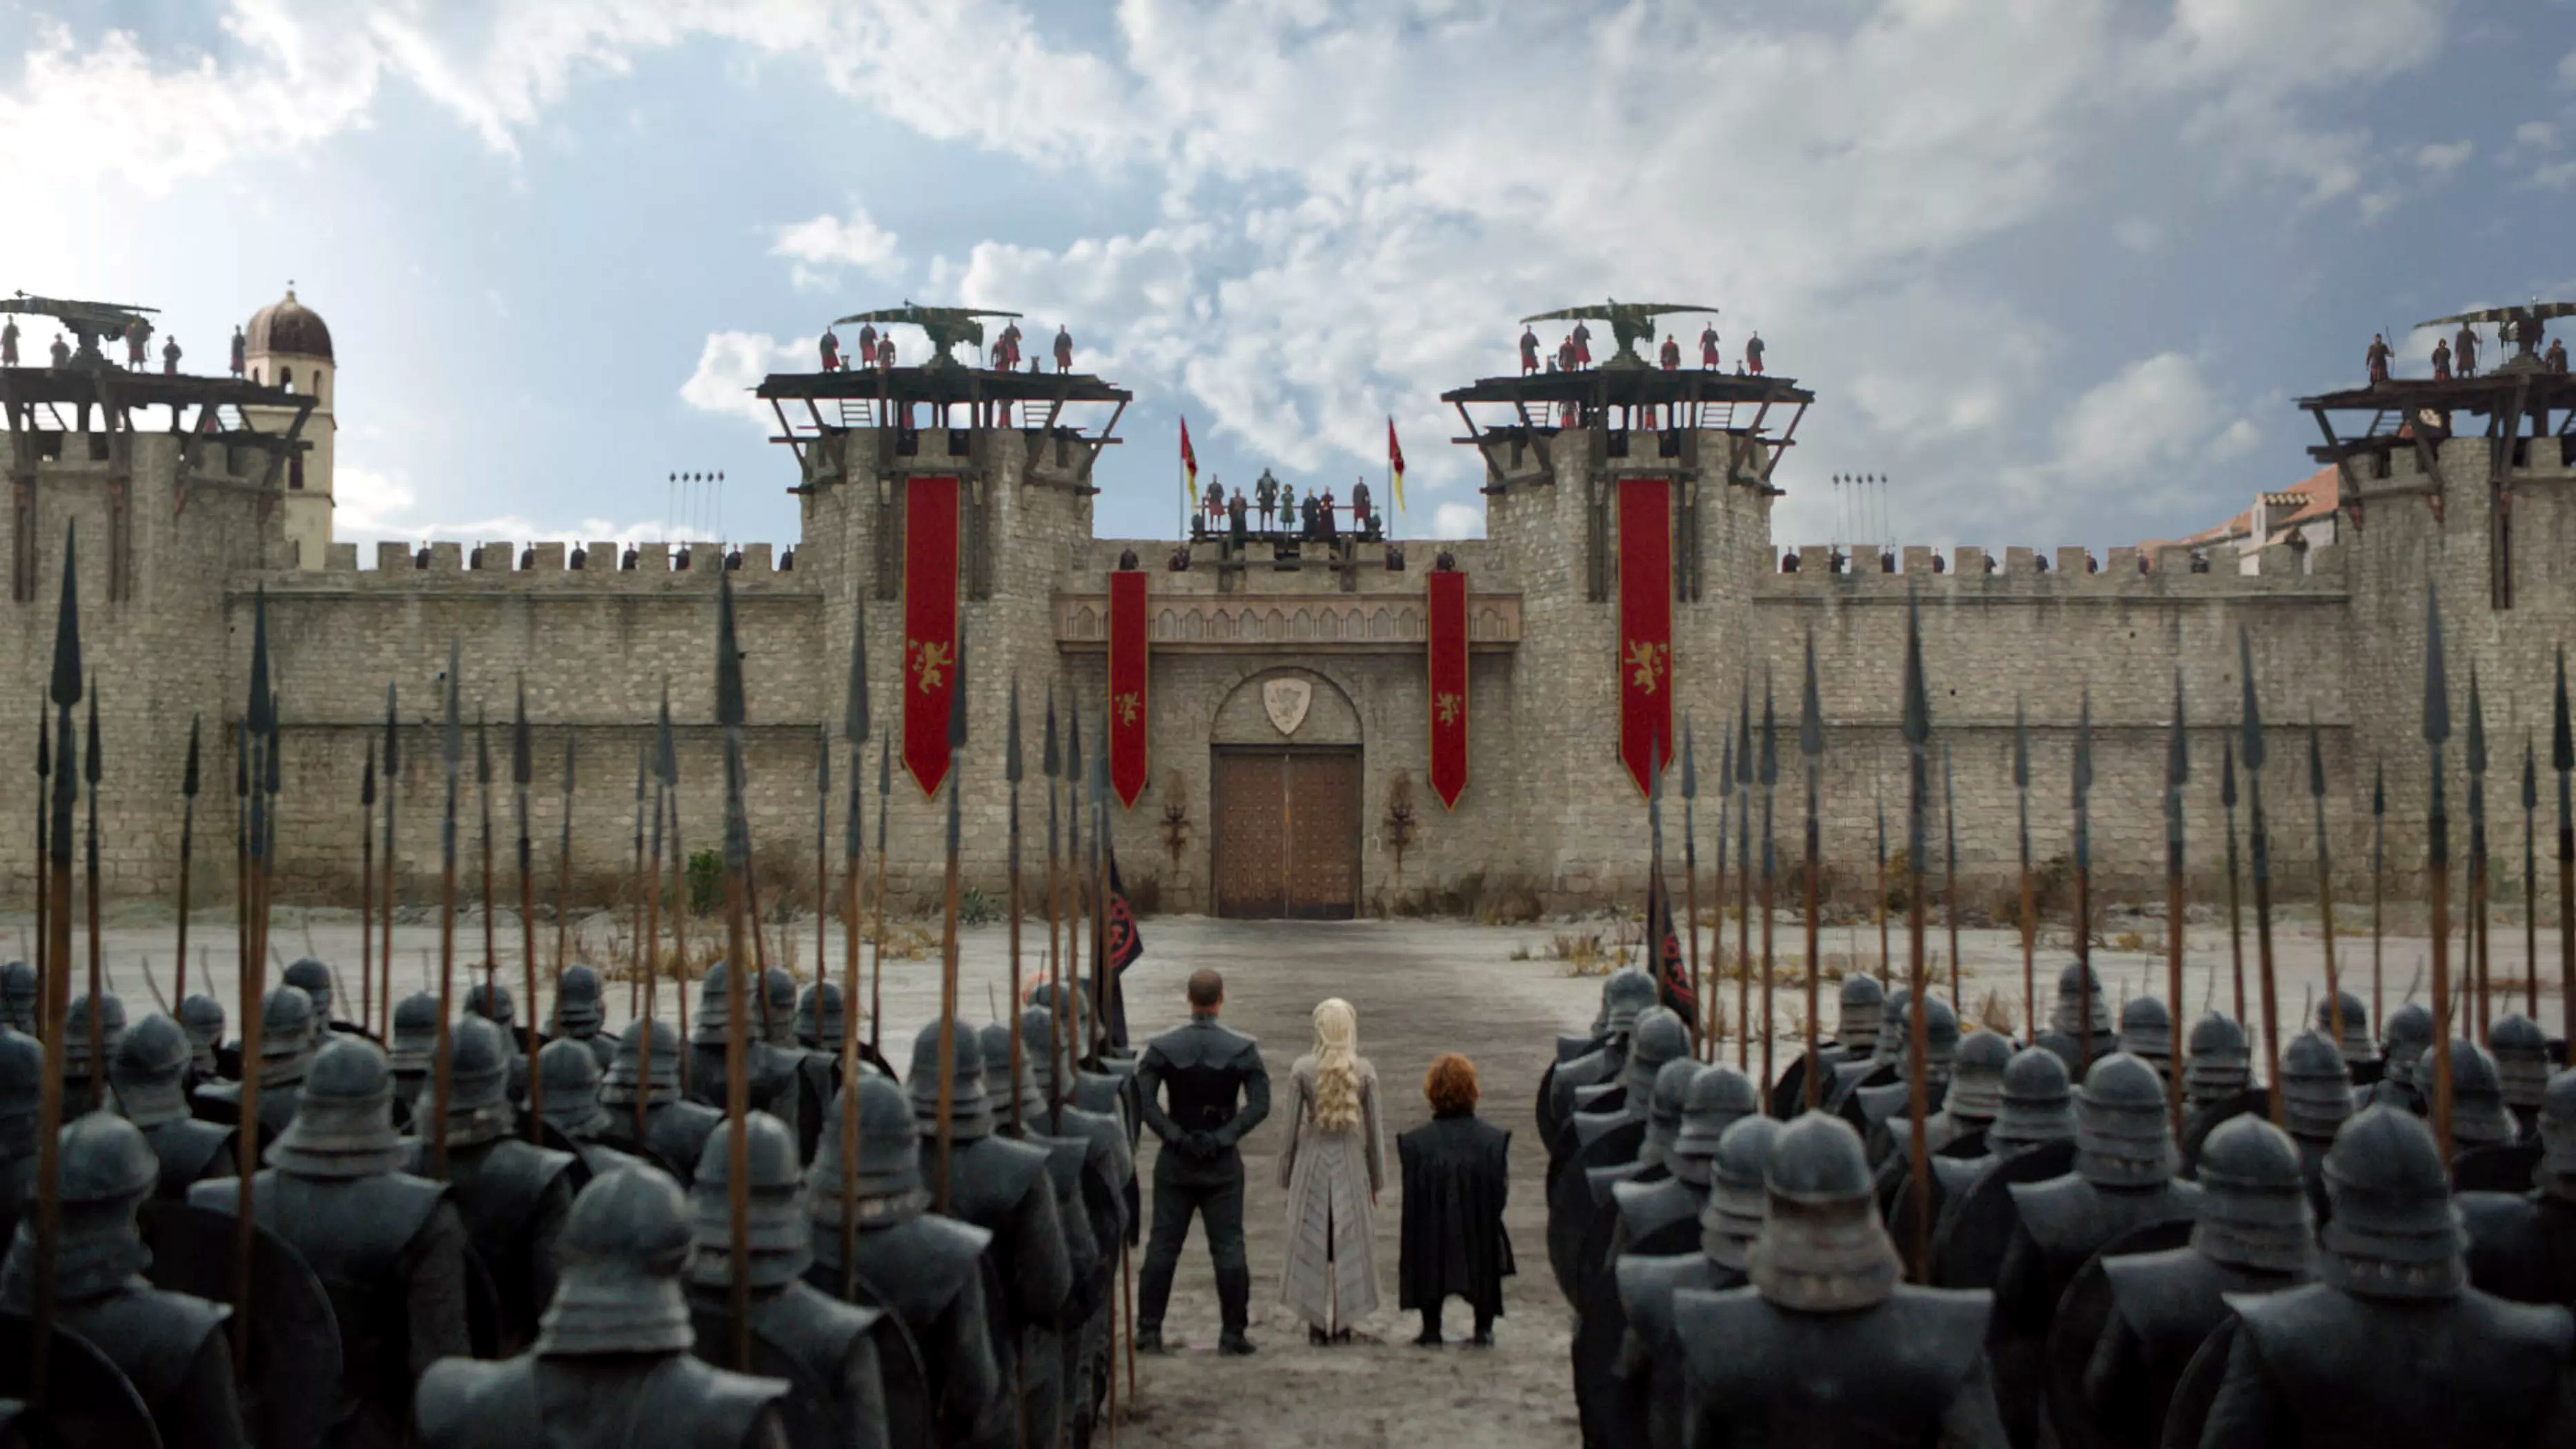 8x04 - The Last of the Starks - The Standoff